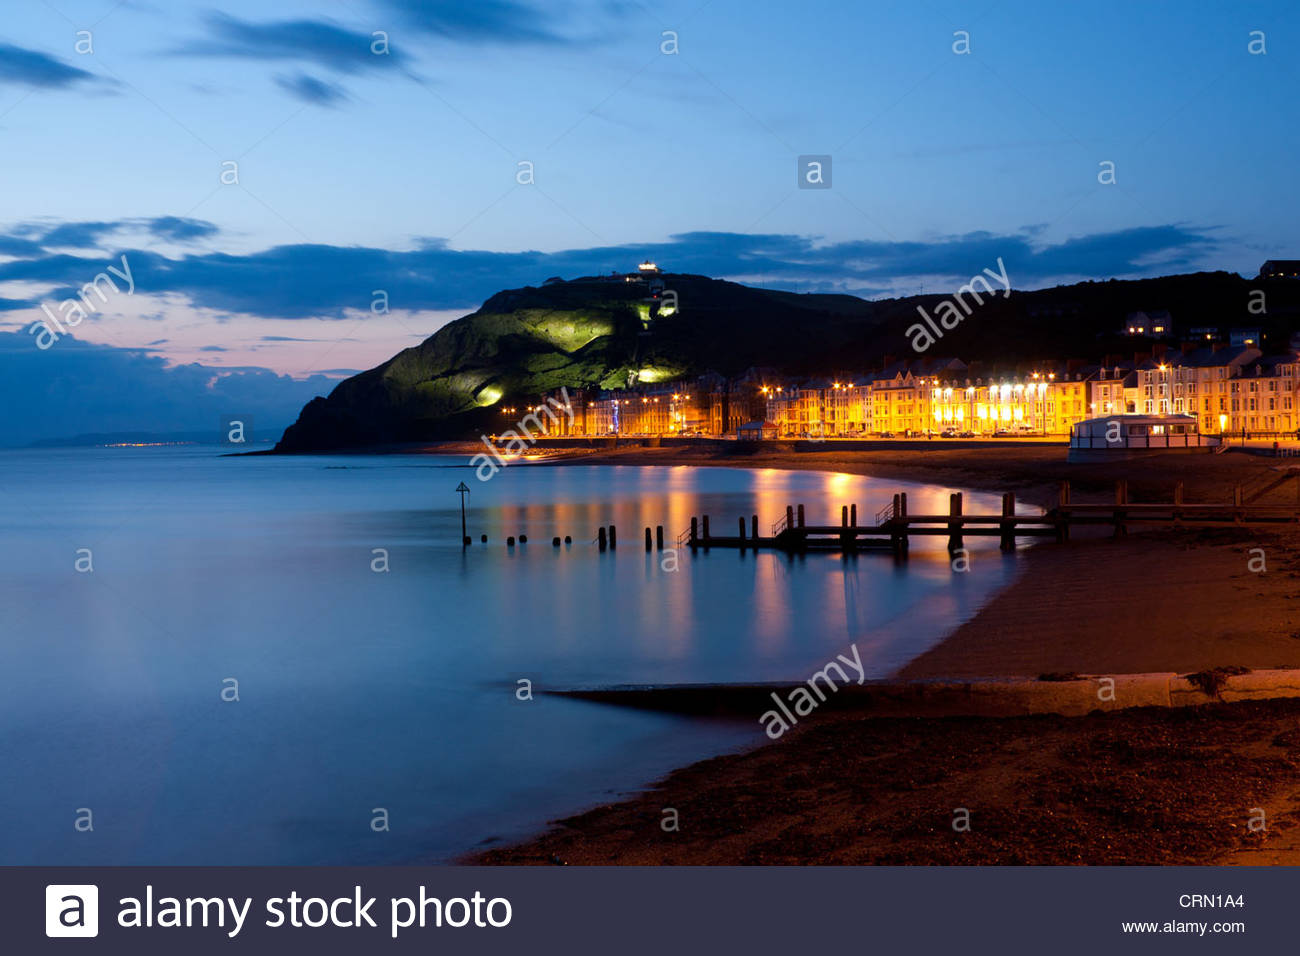 Constitution Hill Mid-Wales, View of Marine Terrace promenade, beach and Constitution Hill at ...